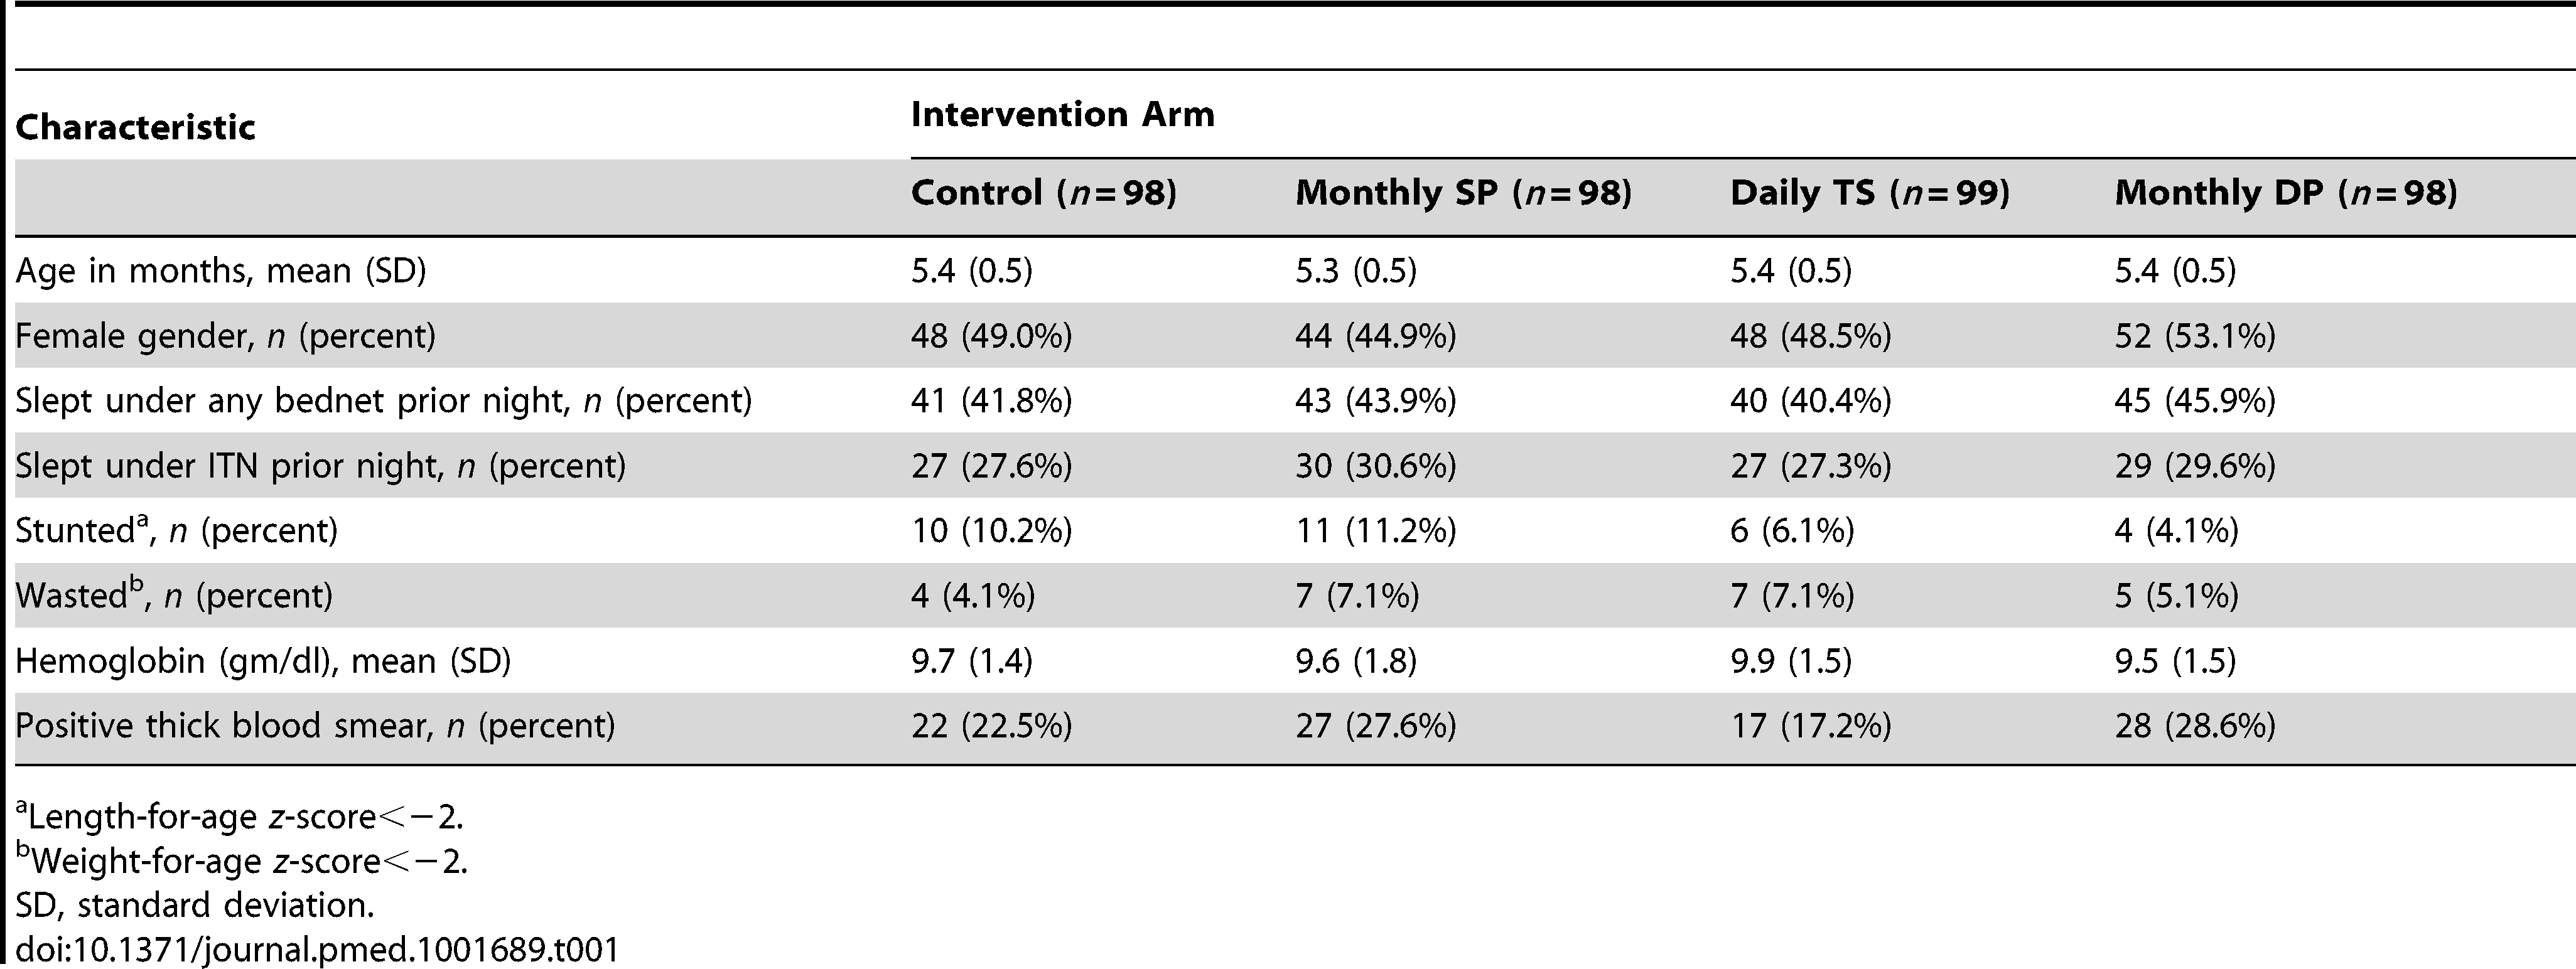 Baseline characteristics at enrollment of study participants randomized to the intervention.